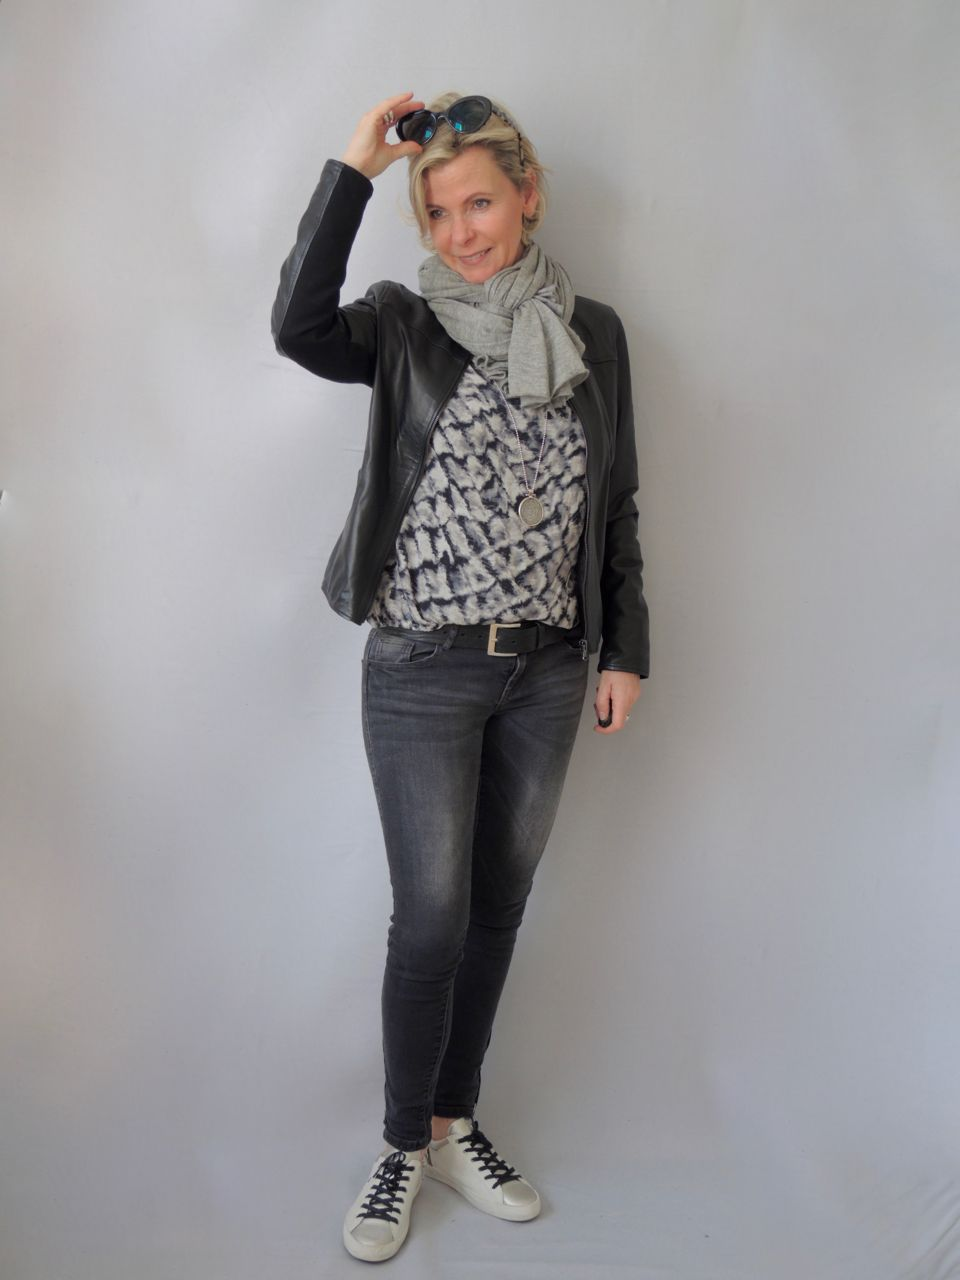 Photo of Lederjacke und Muster – women2style